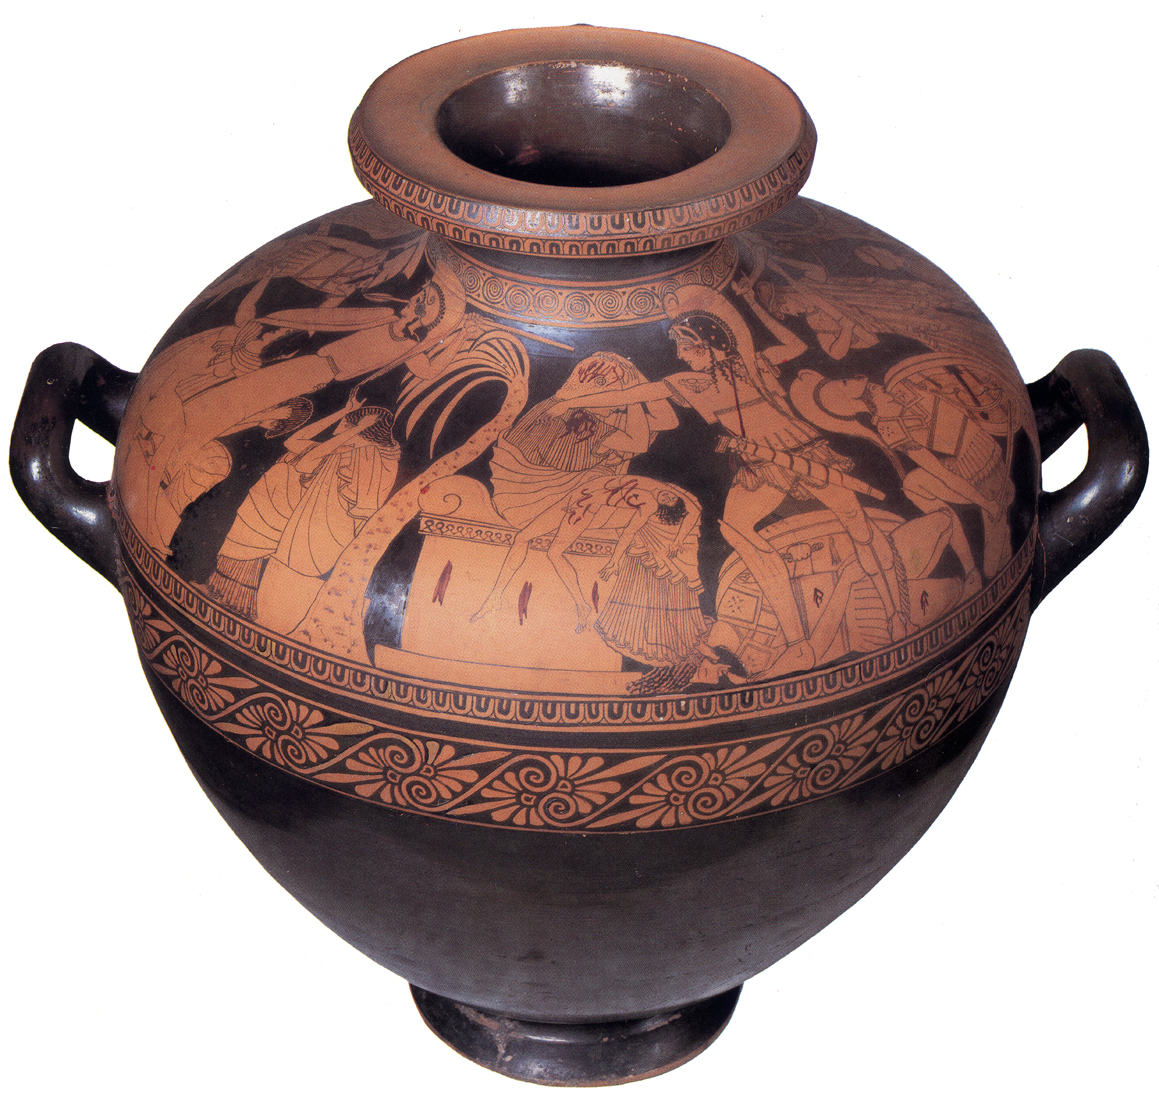 Kleophrades Painter,  Sack of Troy Hydria. 5th century BCE.This image and the two below it show the defeat of the Trojans at the hands of the Greeks: the end of Homer's Iliad.